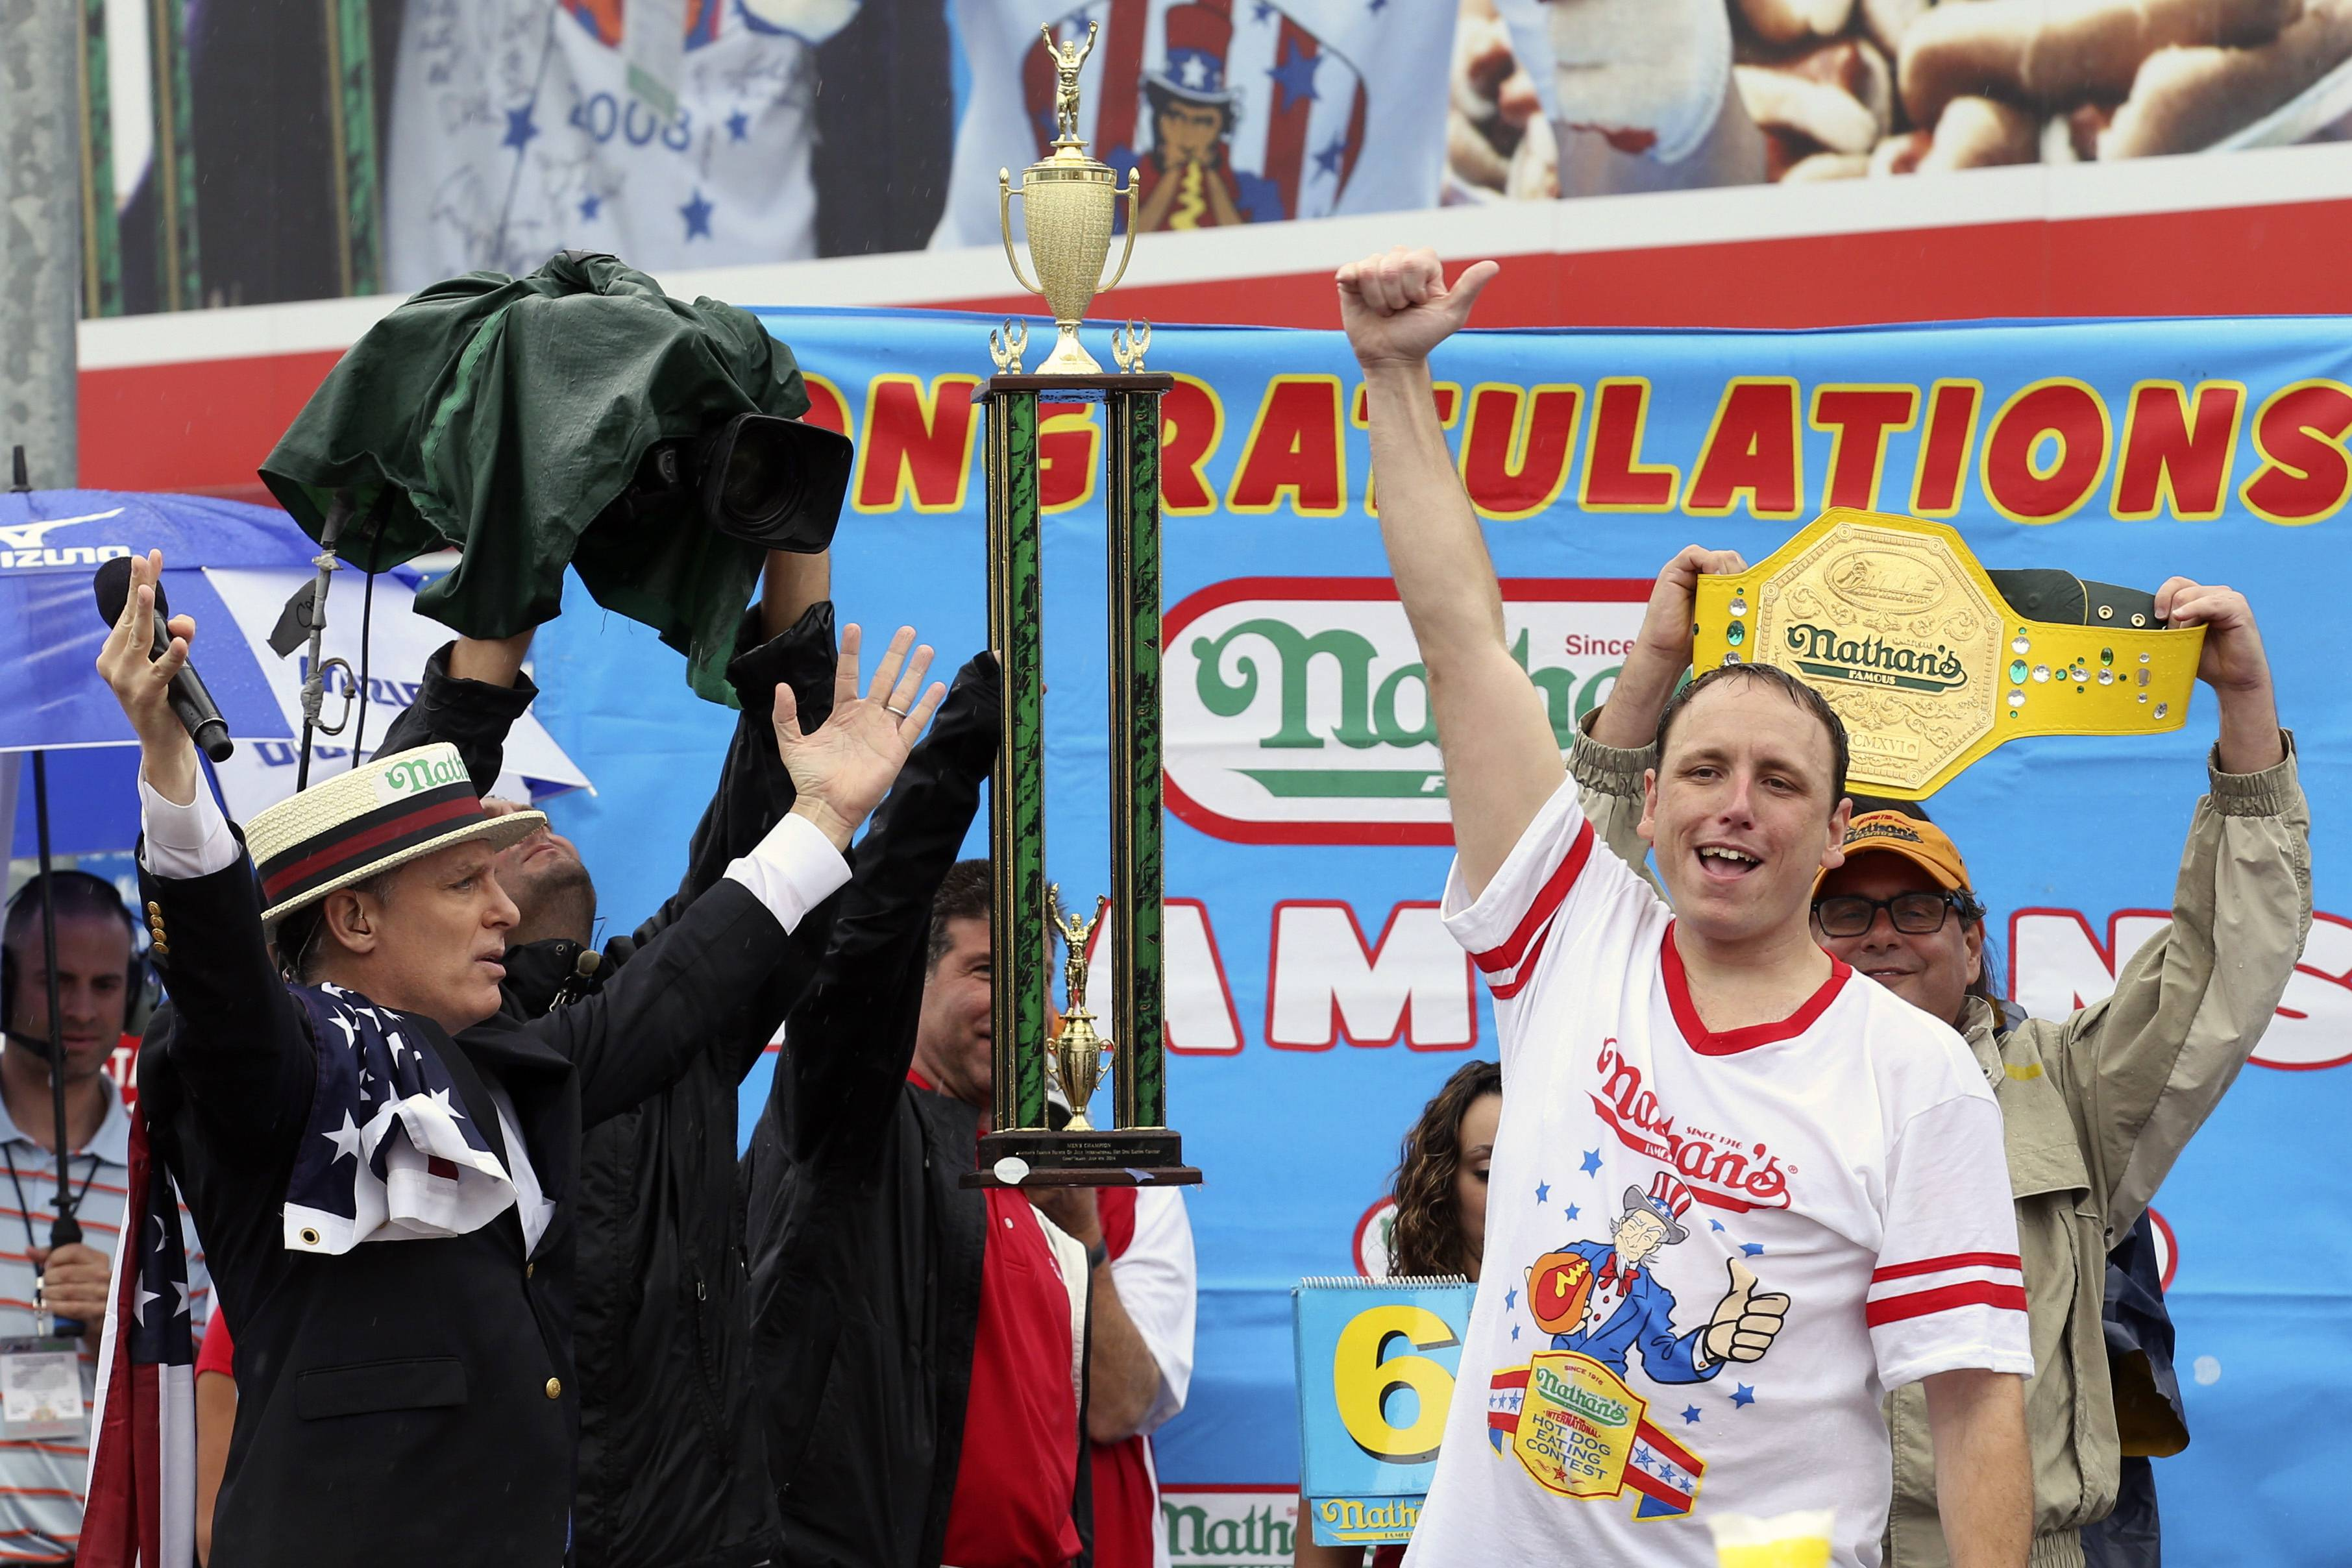 Joey Chestnut raises his fist in the air after winning Nathan's Famous Fourth of July International Hot Dog Eating contest Friday at Coney Island.